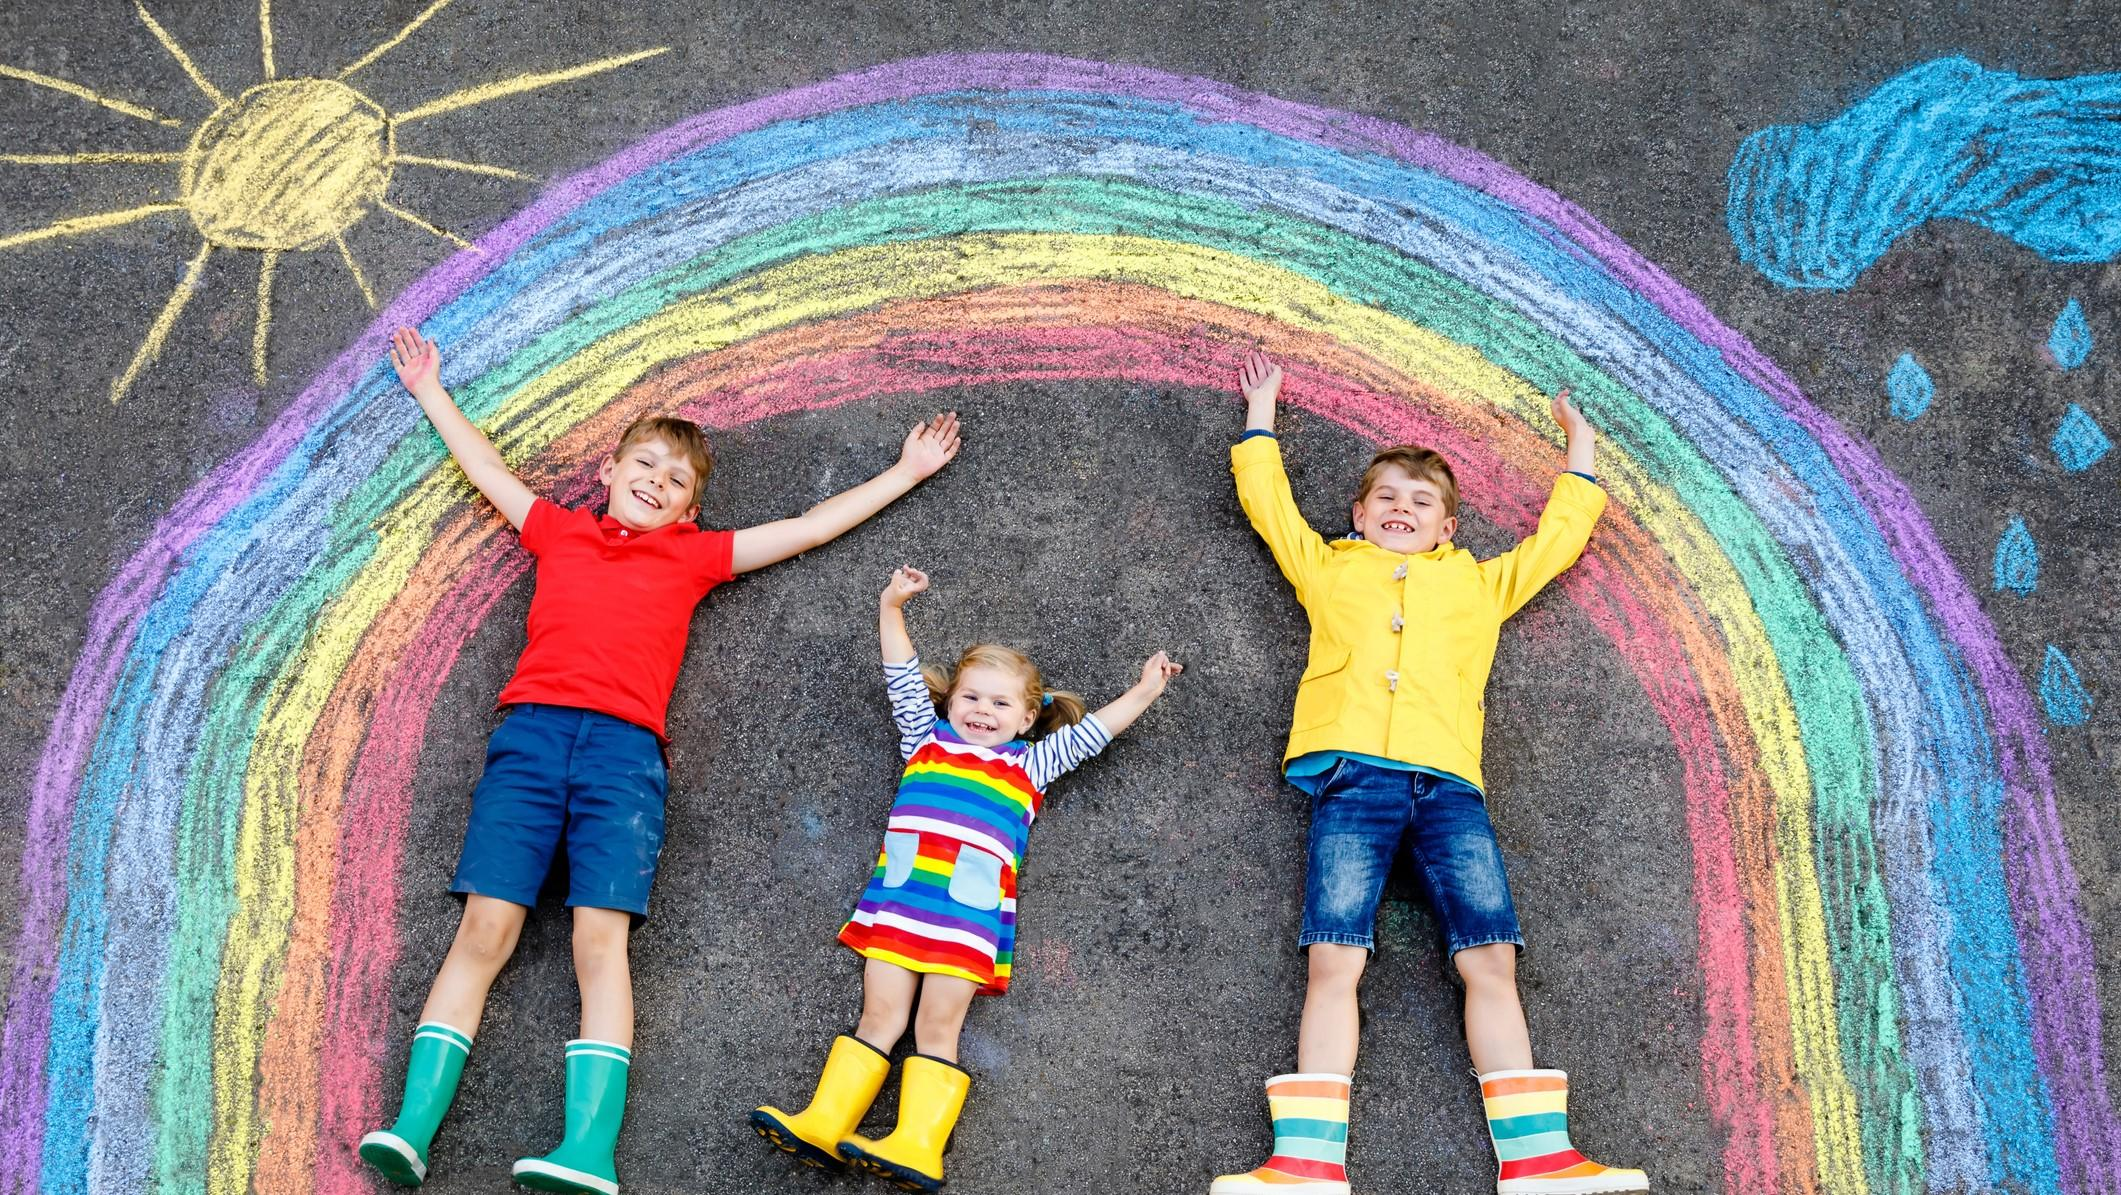 three little children, two school kids boys and toddler girl having fun with with rainbow picture drawing with colorful chalks on asphalt. Siblings in rubber boots painting on ground playing together